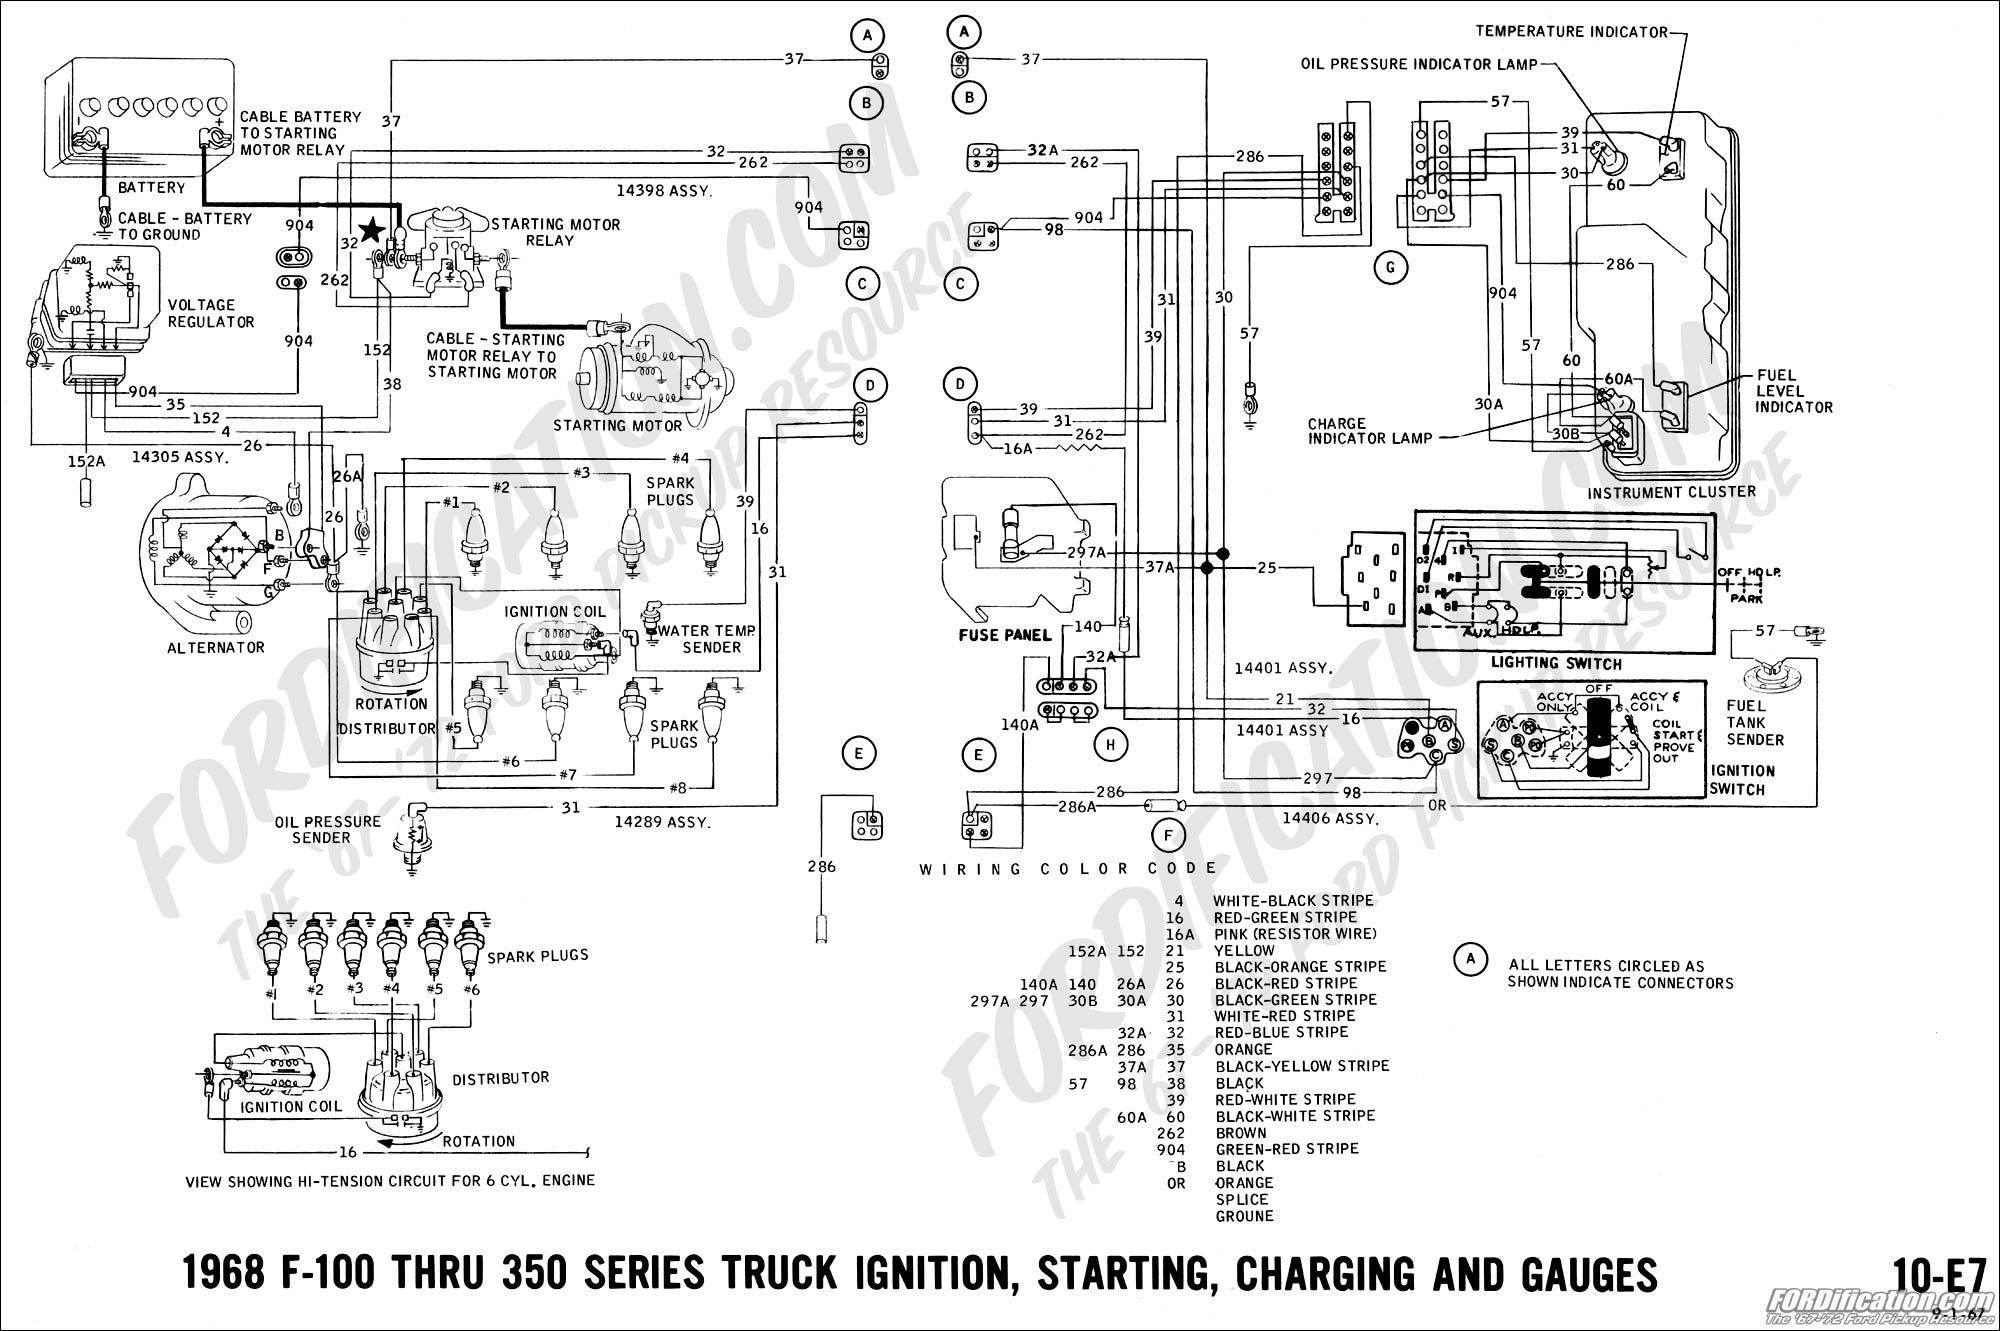 ford truck technical drawings and schematics section h wiring on 1989 Ford F -150 Wiring Diagram for 1968 f 100 thru f 350 ignition, starting, charging and gauges at 1991 Ford F -150 Wiring Diagram